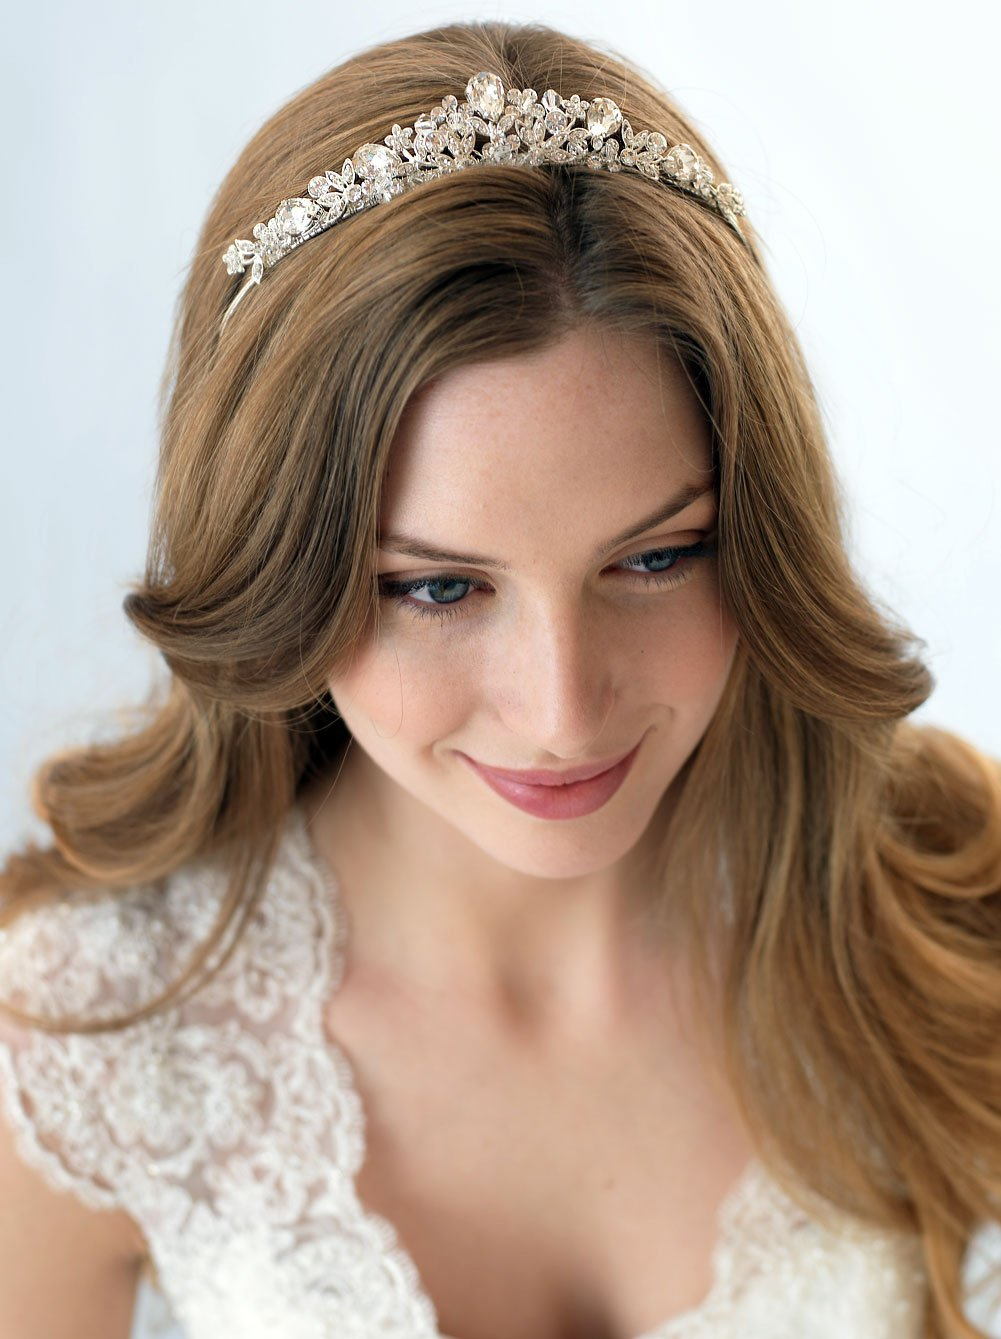 USABride Swarovski Crystal & Rhinestone Bridal Tiara Crown for Weddings 3008